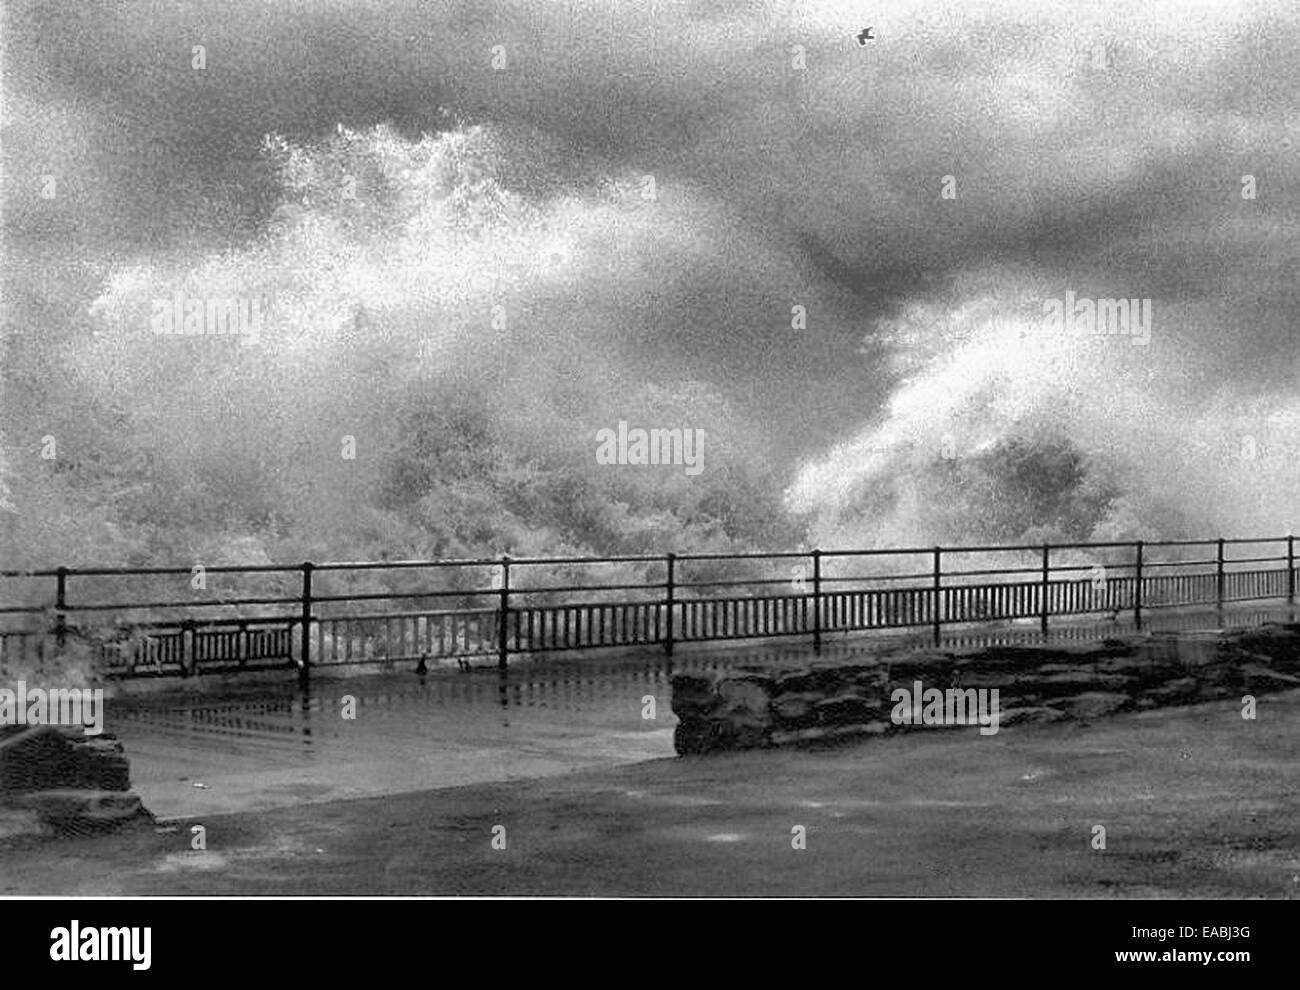 Large waves crashing against the lower promenade due to a storm at the coast in Whitley Bay, North East England. - Stock Image